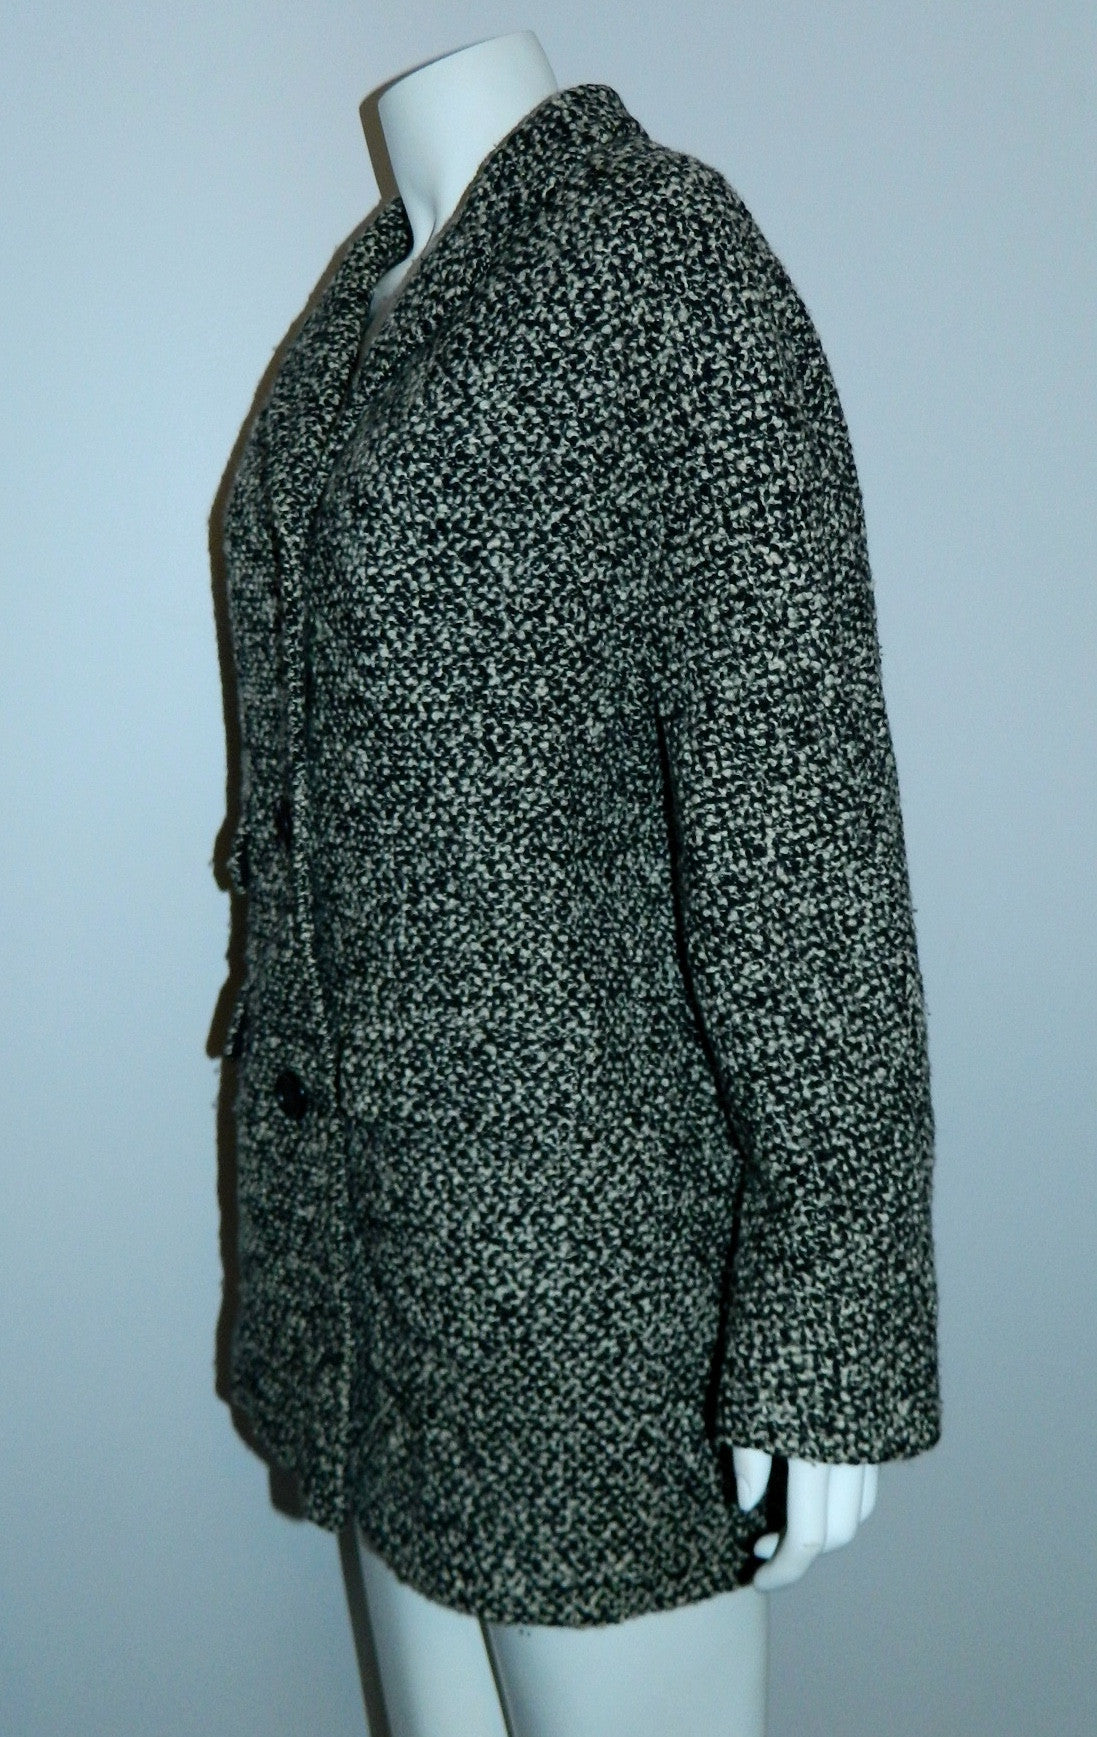 vintage tweed cocoon coat 1950s / 1960s Best & Co. black white boucle / oversized boxy car coat